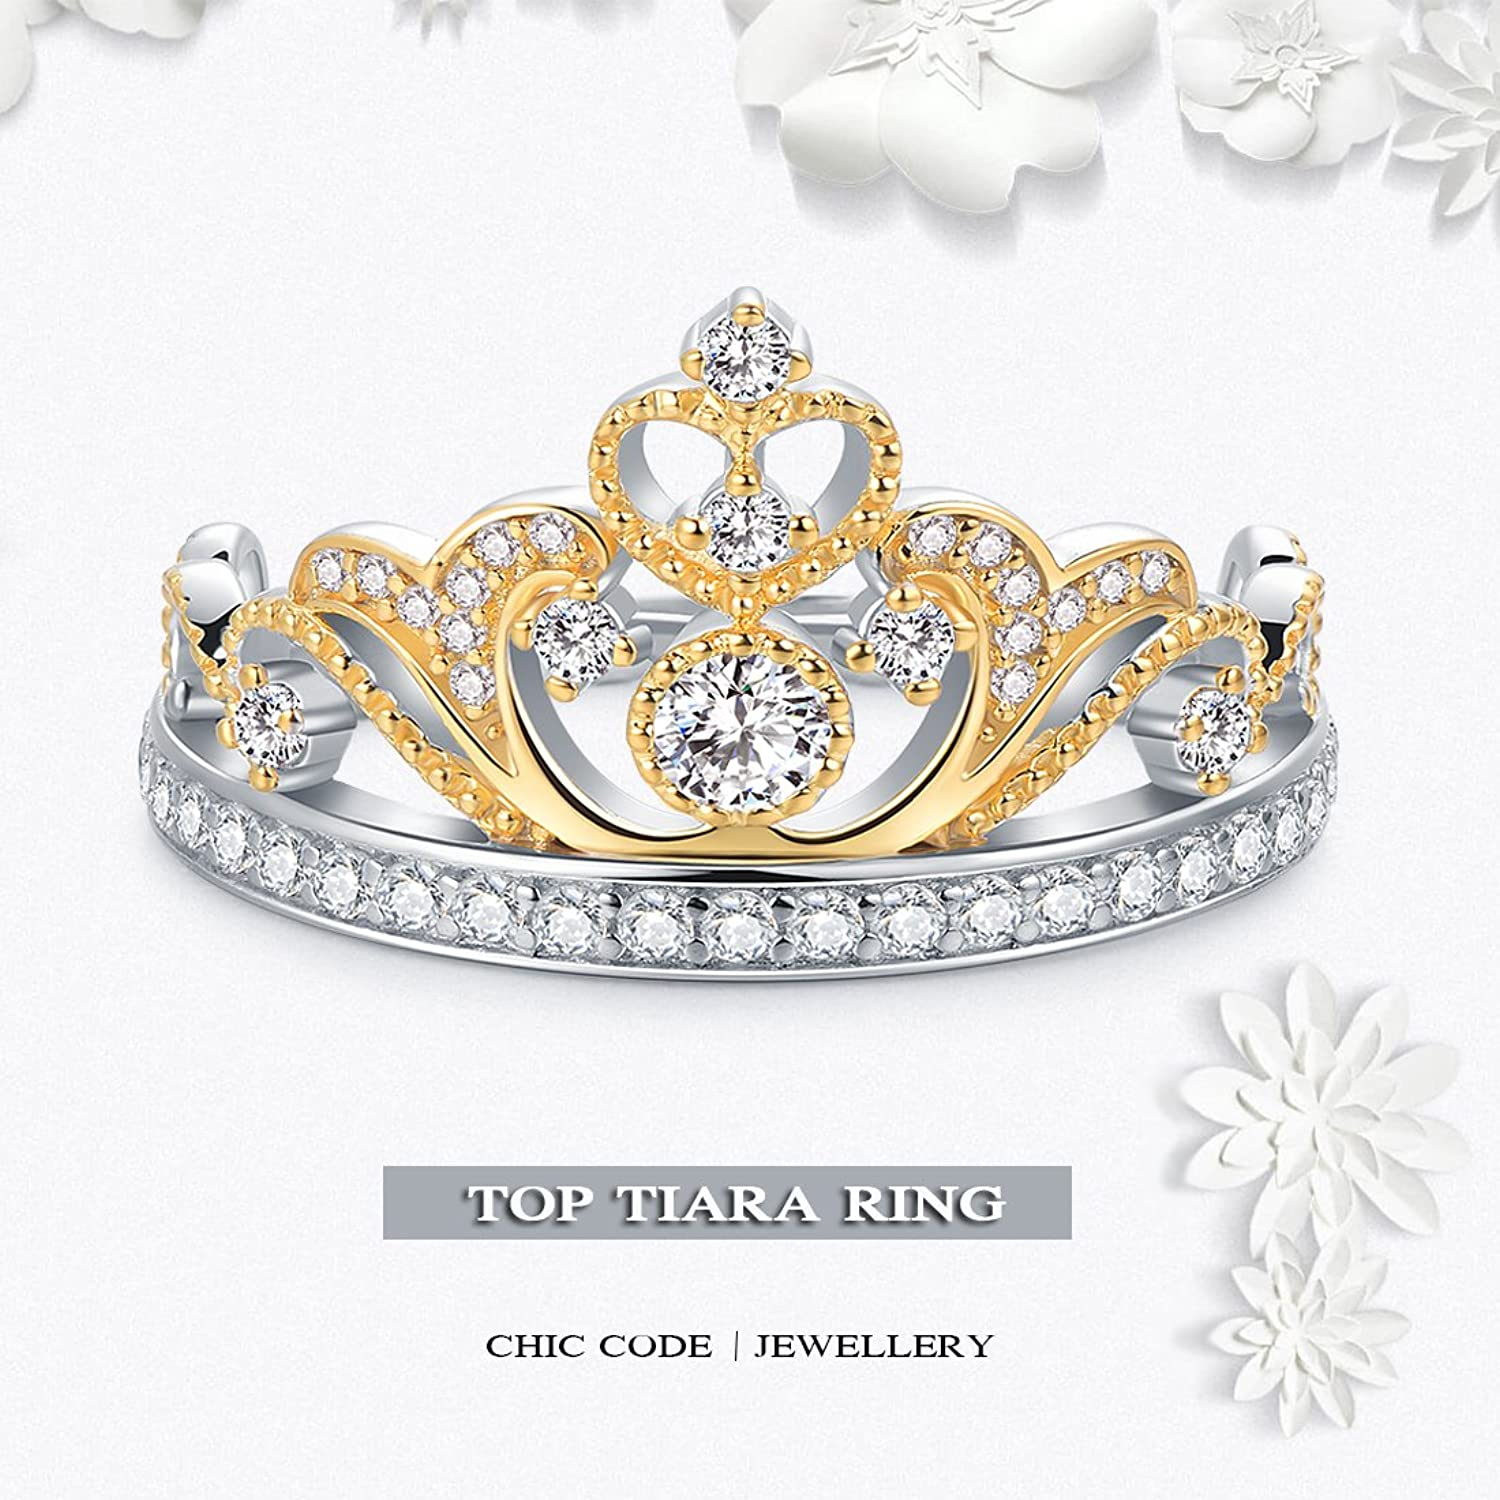 Bundle offer 18k gold plated amp white gold plated necklace 2 ring - Amazon Com Chic Code Yellow White Gold Plated 925 Sterling Silver Princess Crown Ring Top Tiara Ring Gift Jewelry